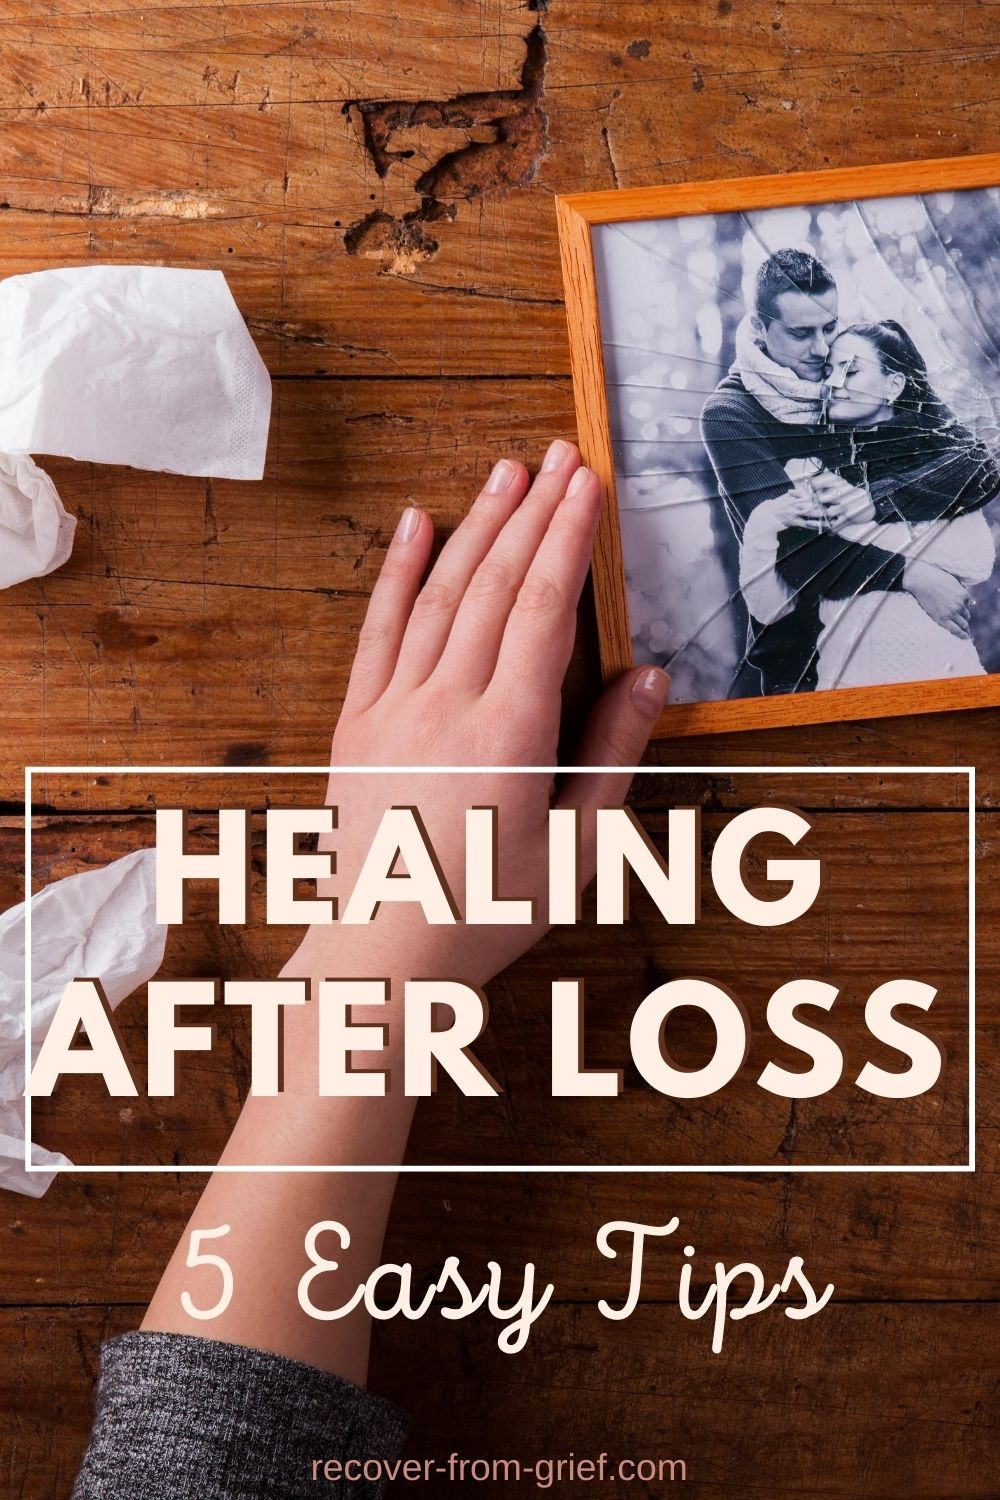 5 Easy tips for healing after loss - Pinterest image